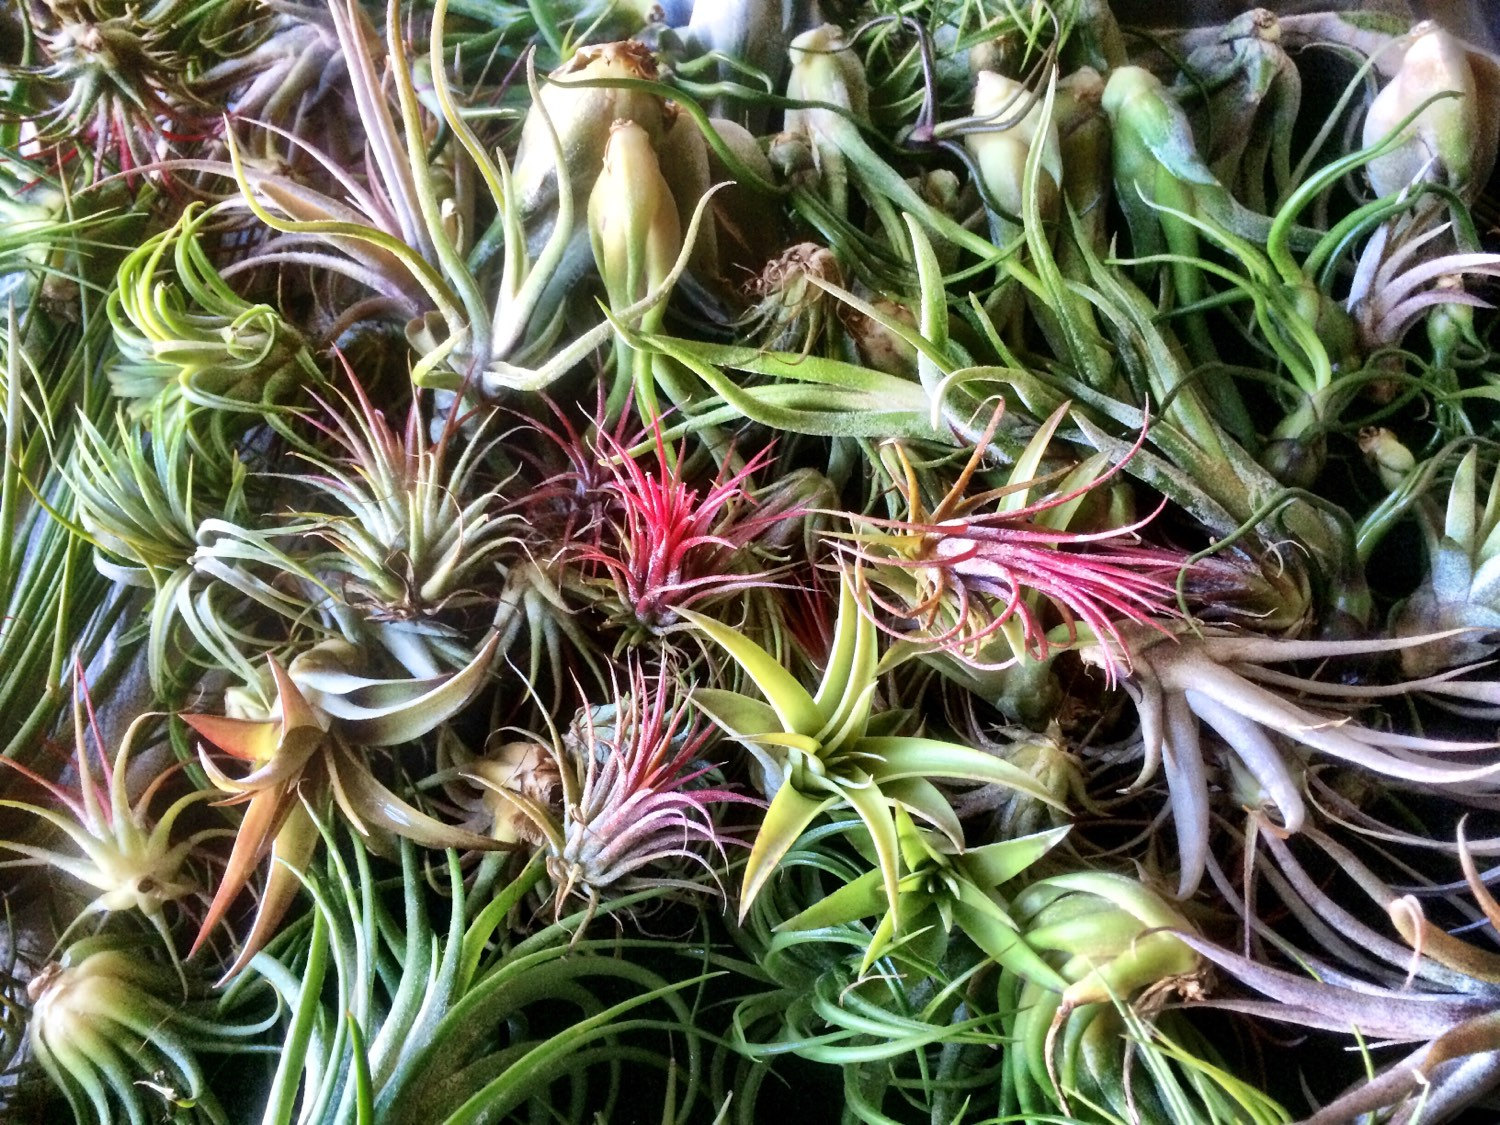 40 Stunning Photos Featuring Varieties and Types of Air Plants